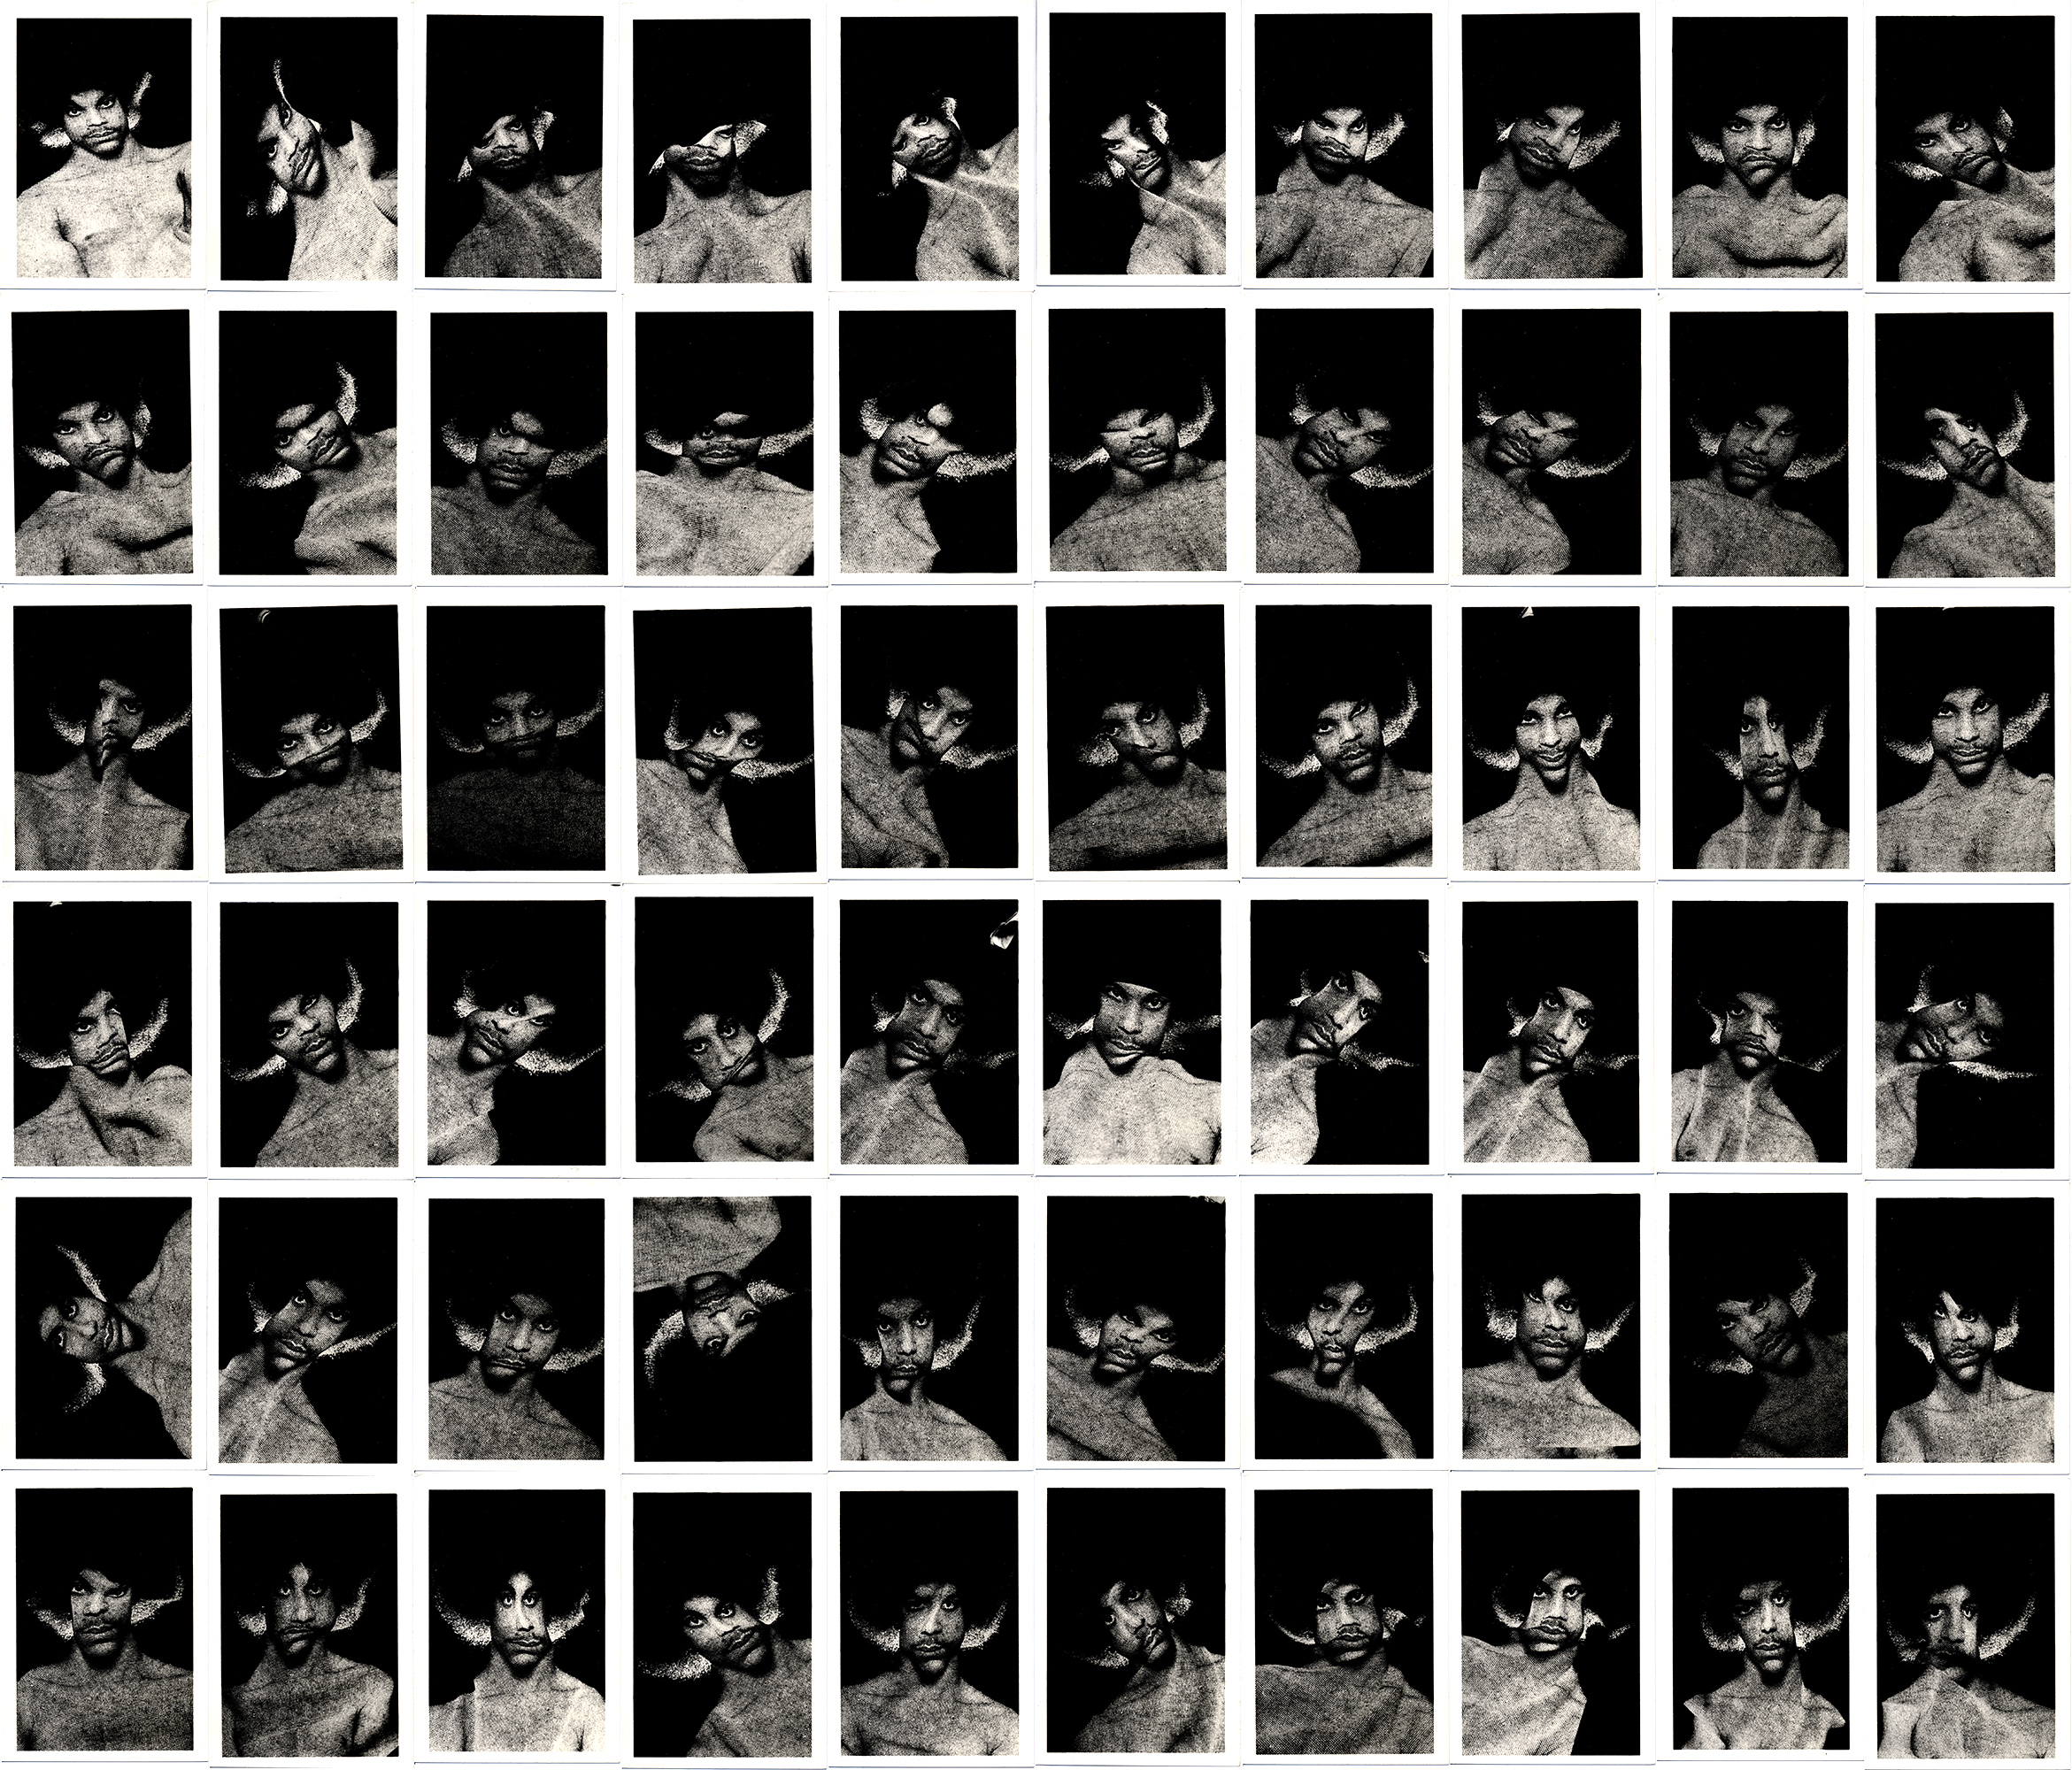 A grid of 60 manipulated scans of and image of pop musician Prince.